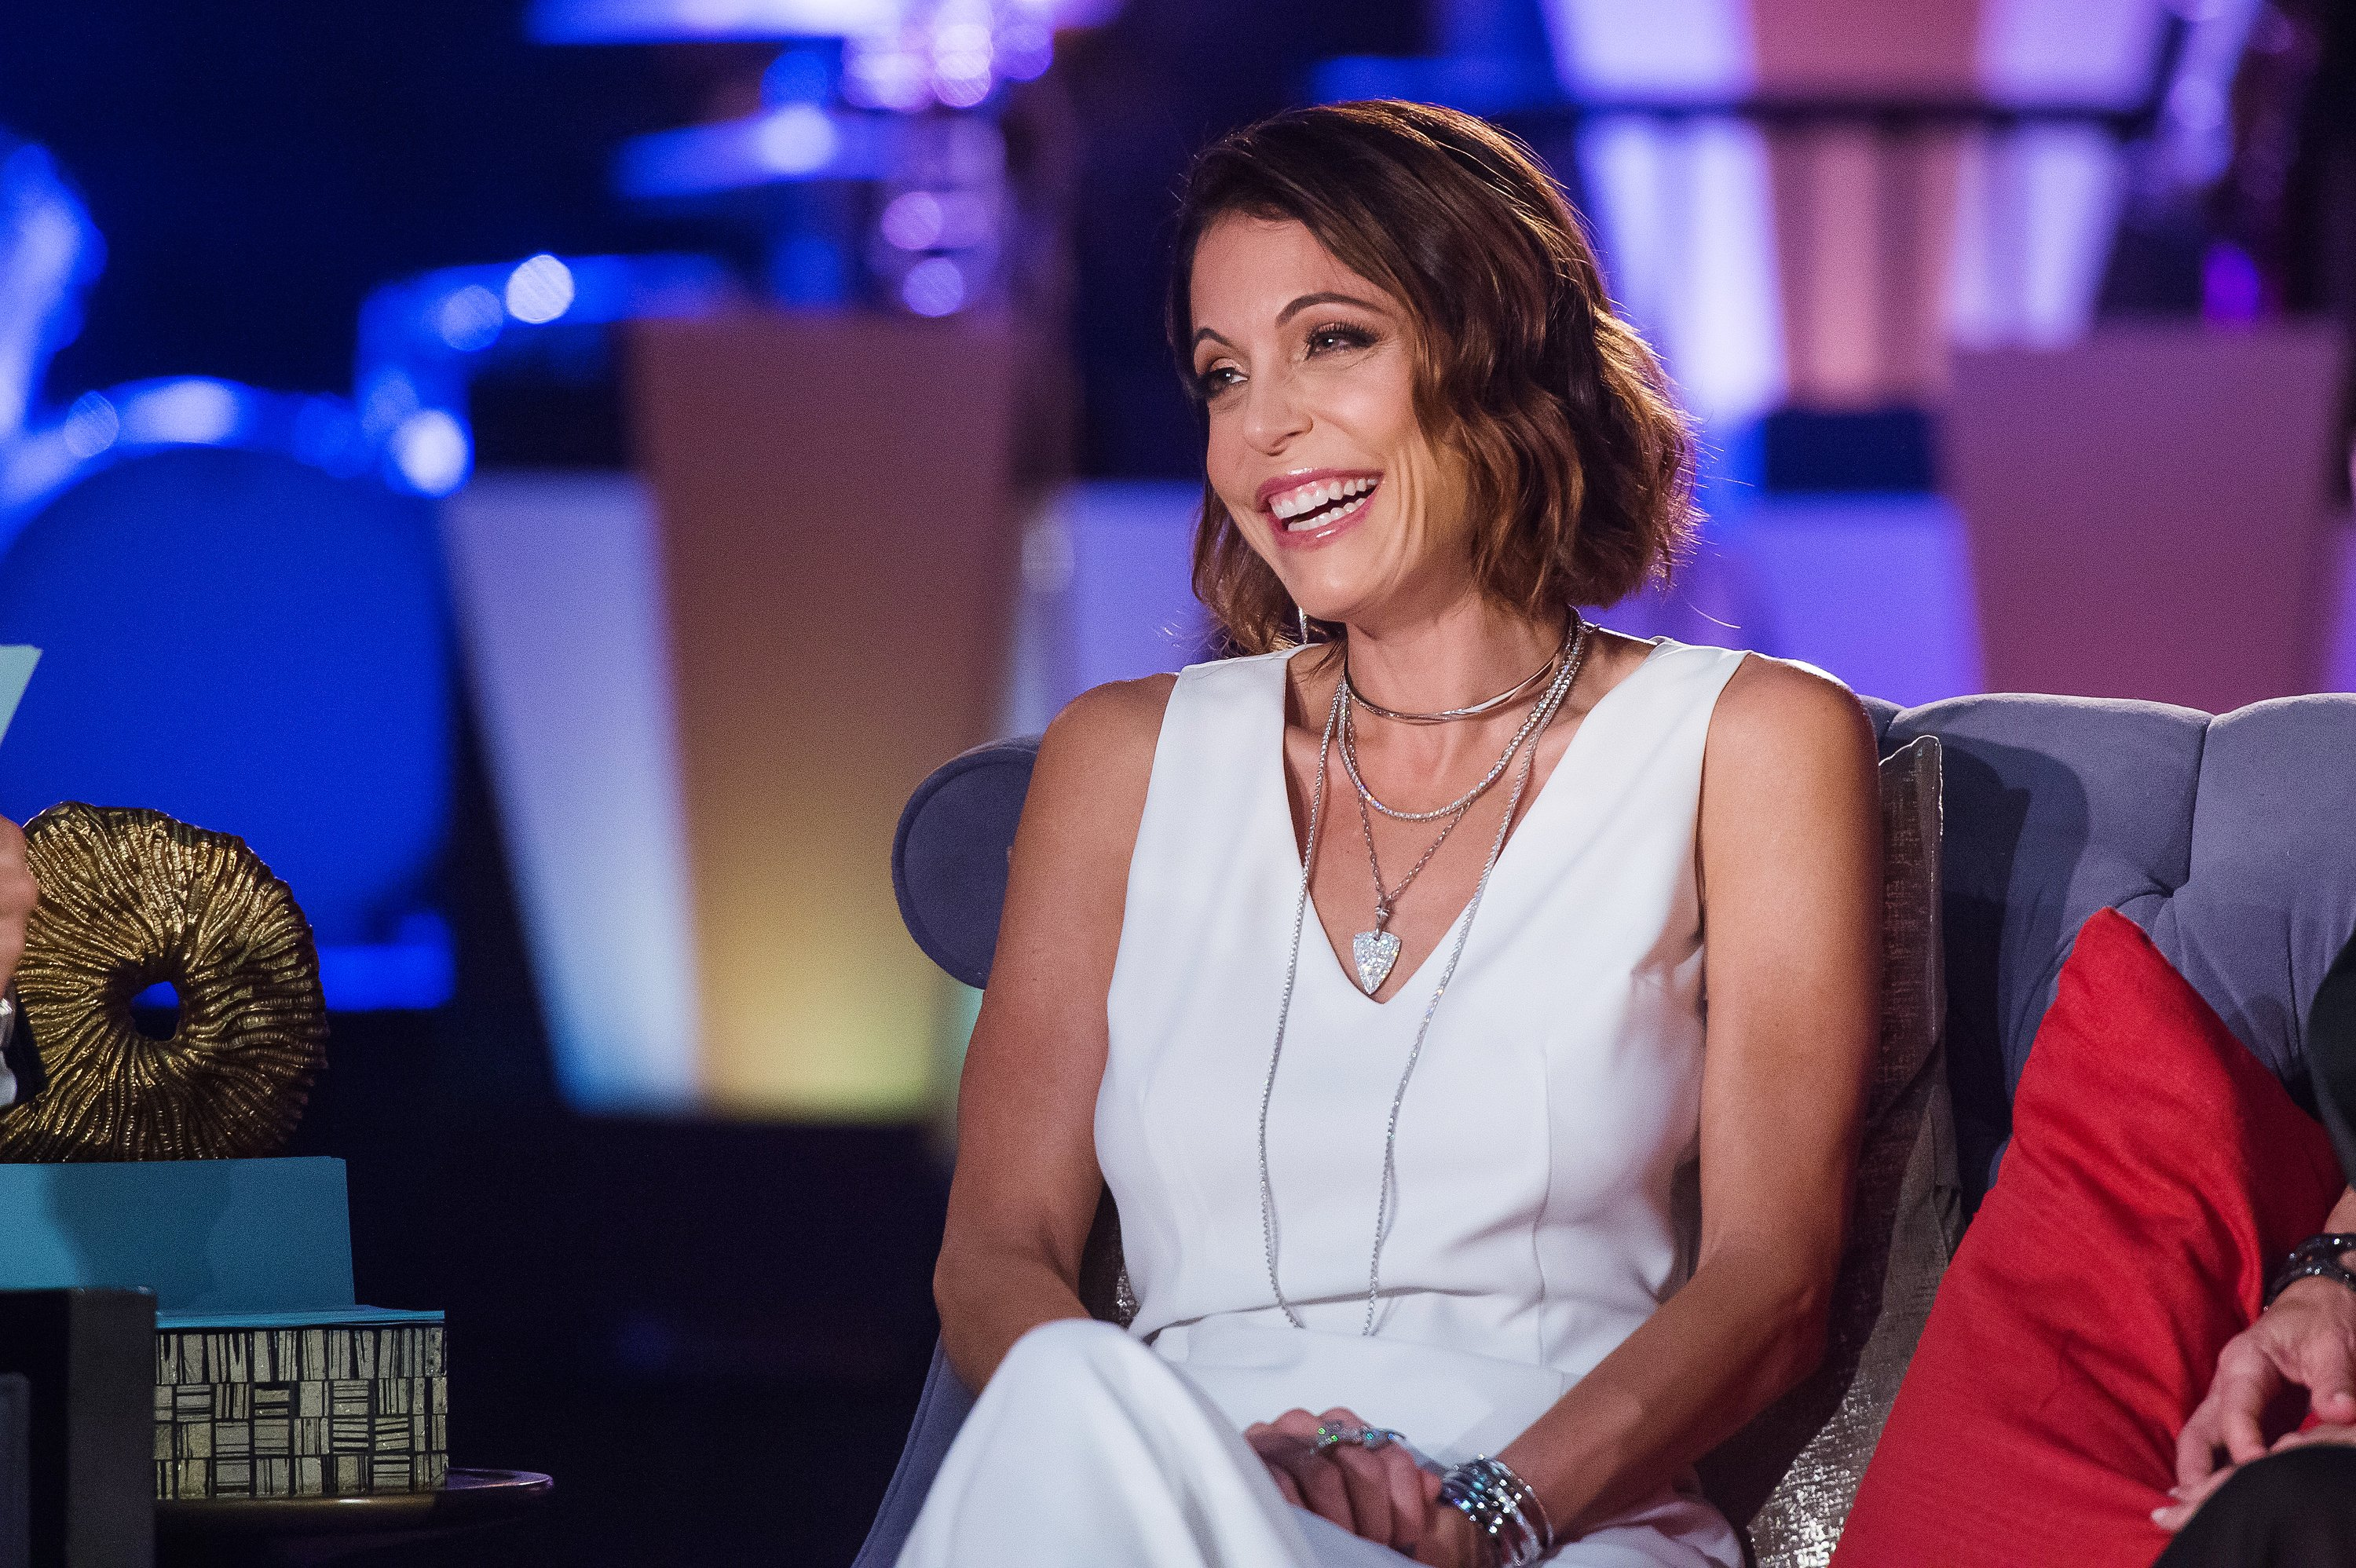 """An undated image of reality star Bethenny Frankel during the """"Real Housewives of New York City"""" Season 8 reunion   Photo: Getty Images"""